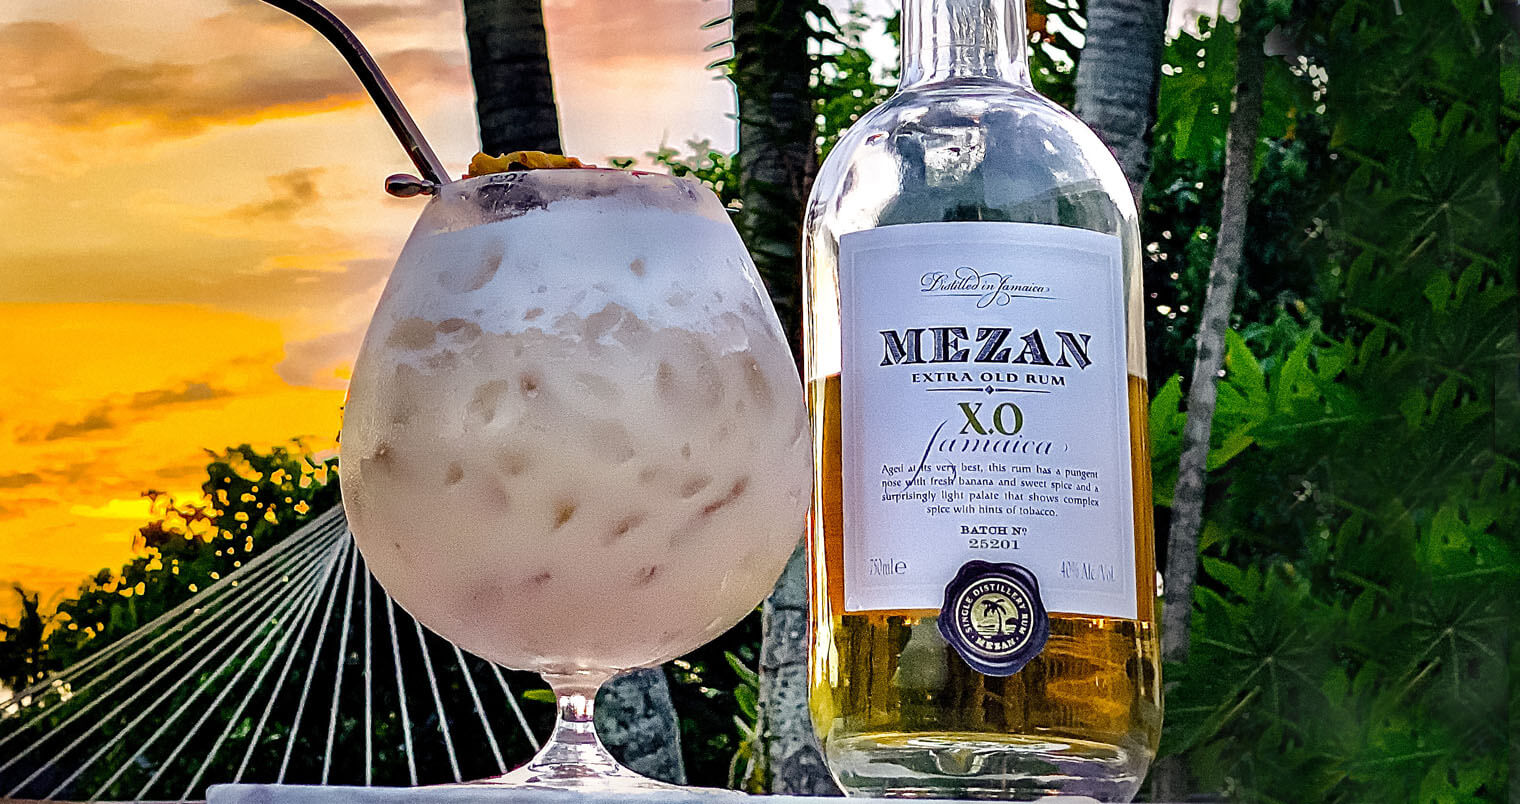 R & R, cocktail and mexan xo rum bottle, tropical background, featured image